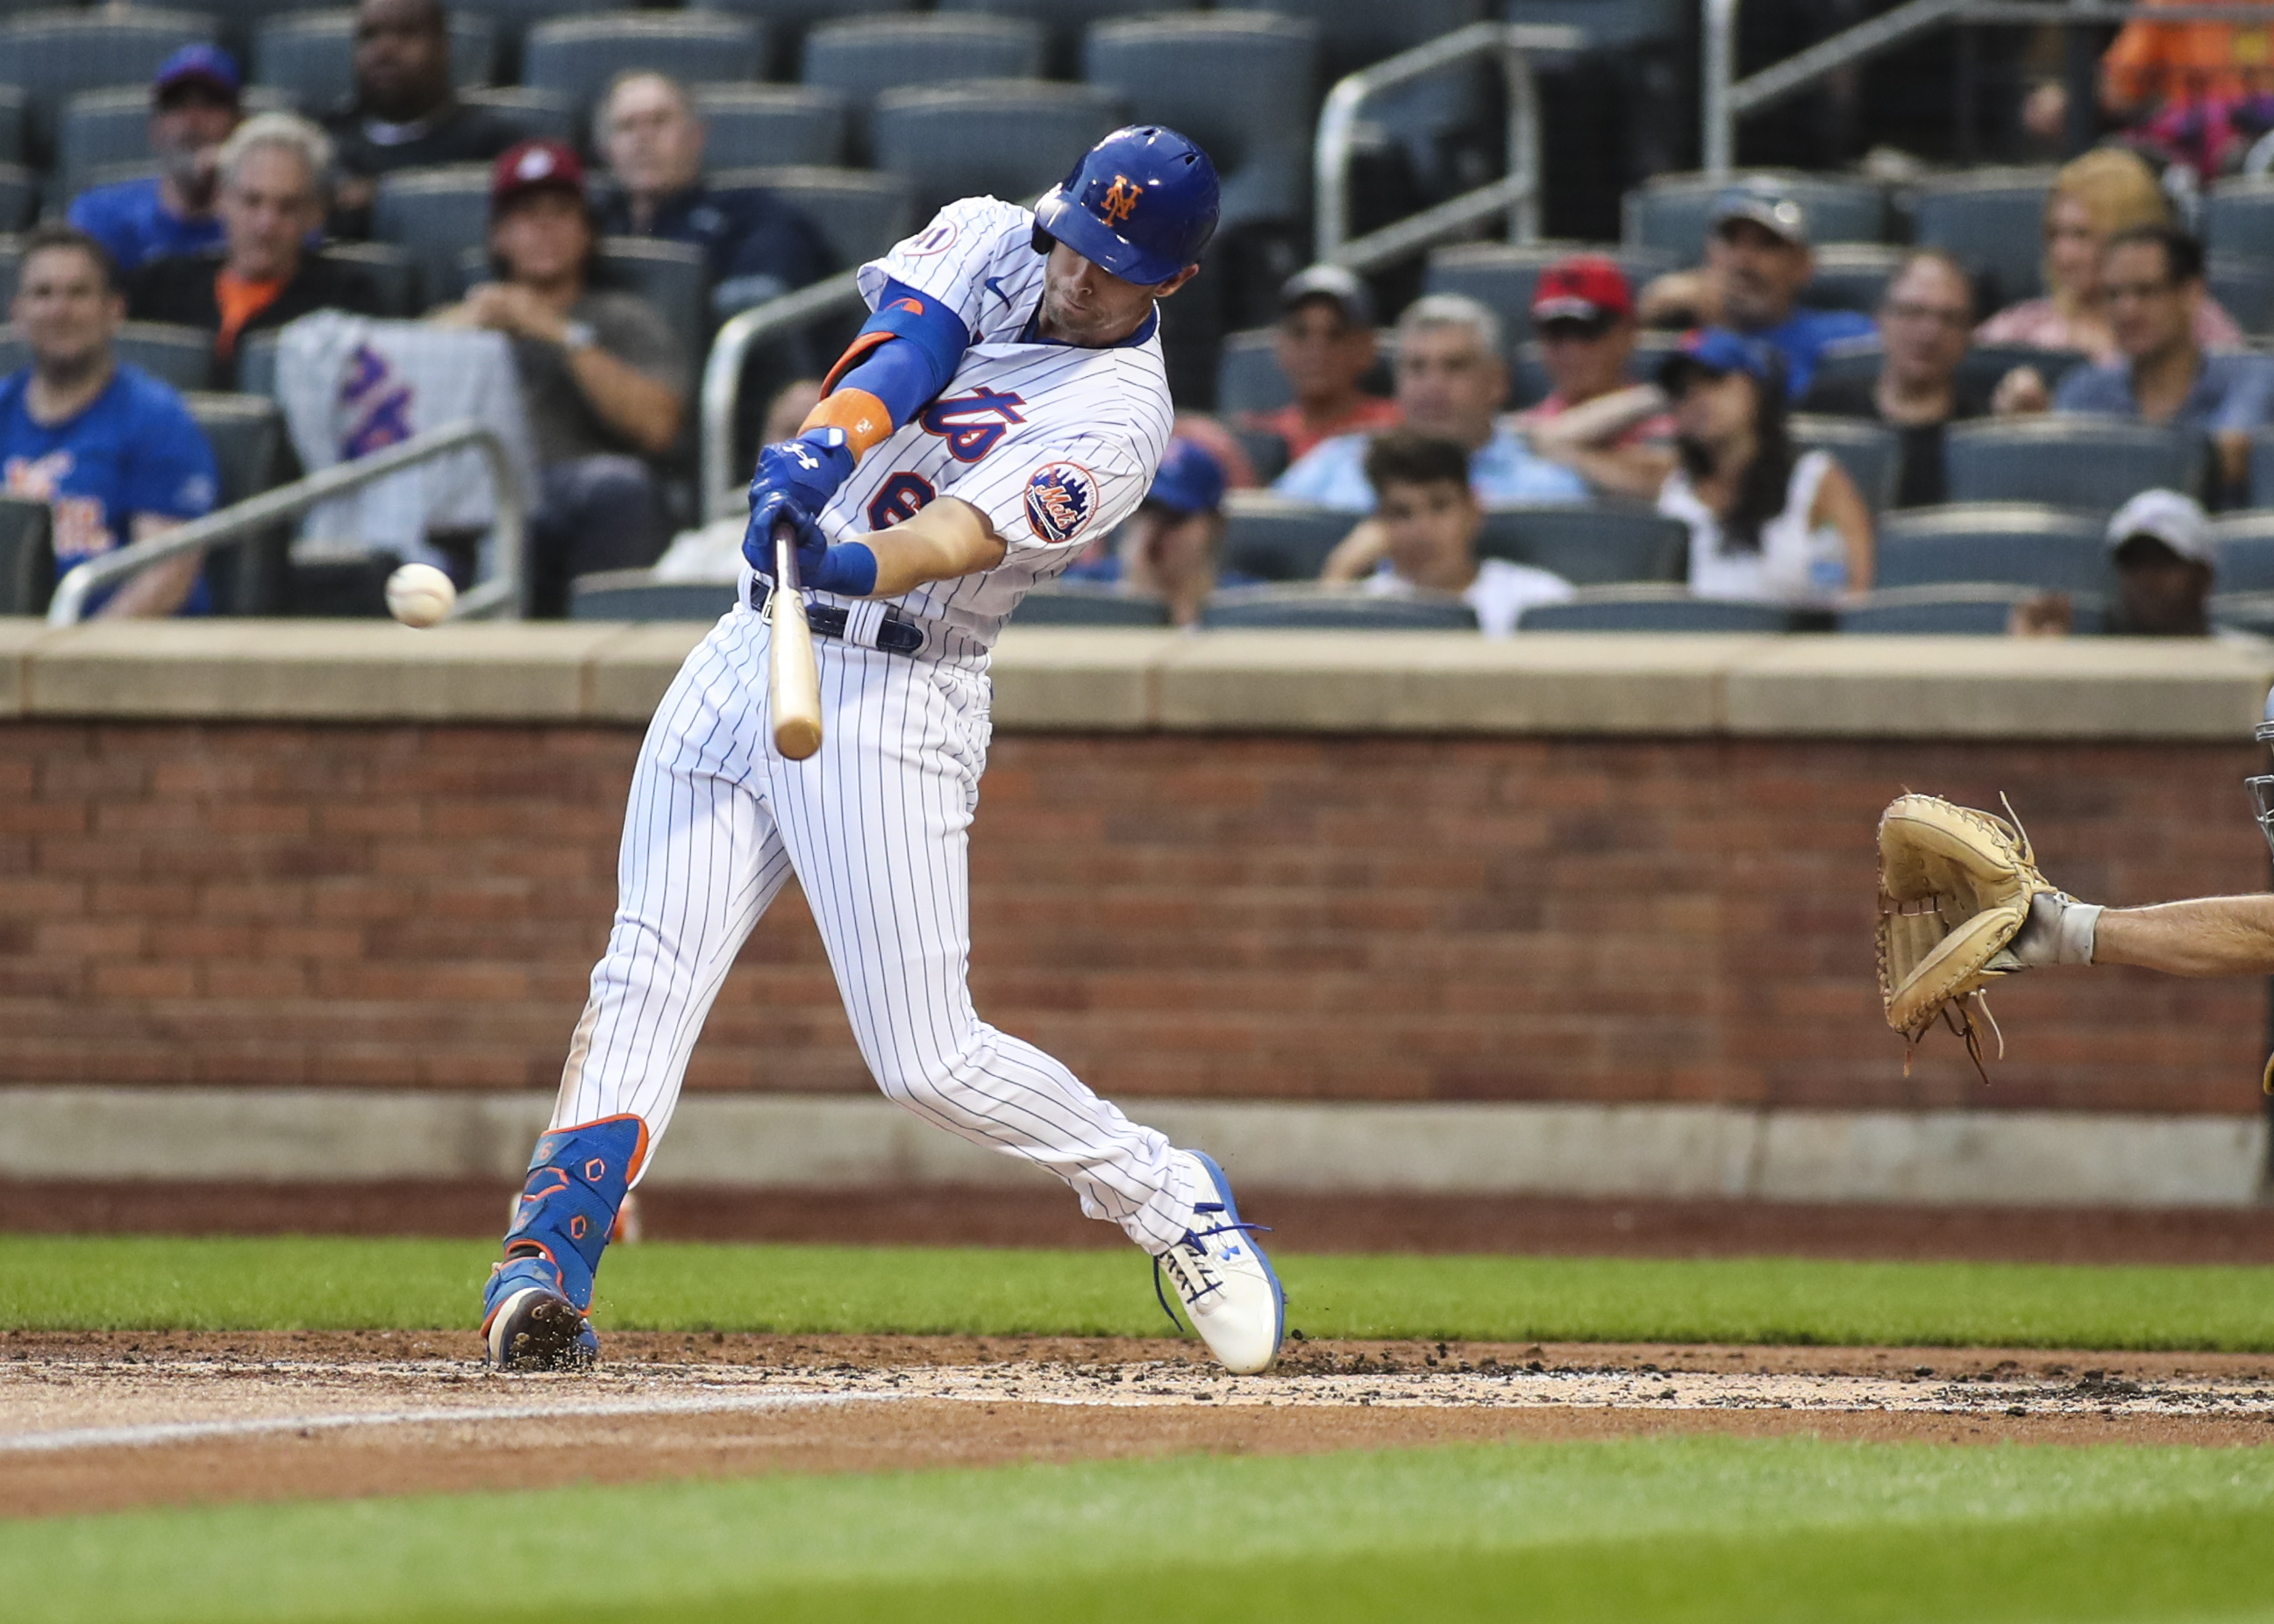 New York Mets split doubleheader with Pittsburgh Pirates